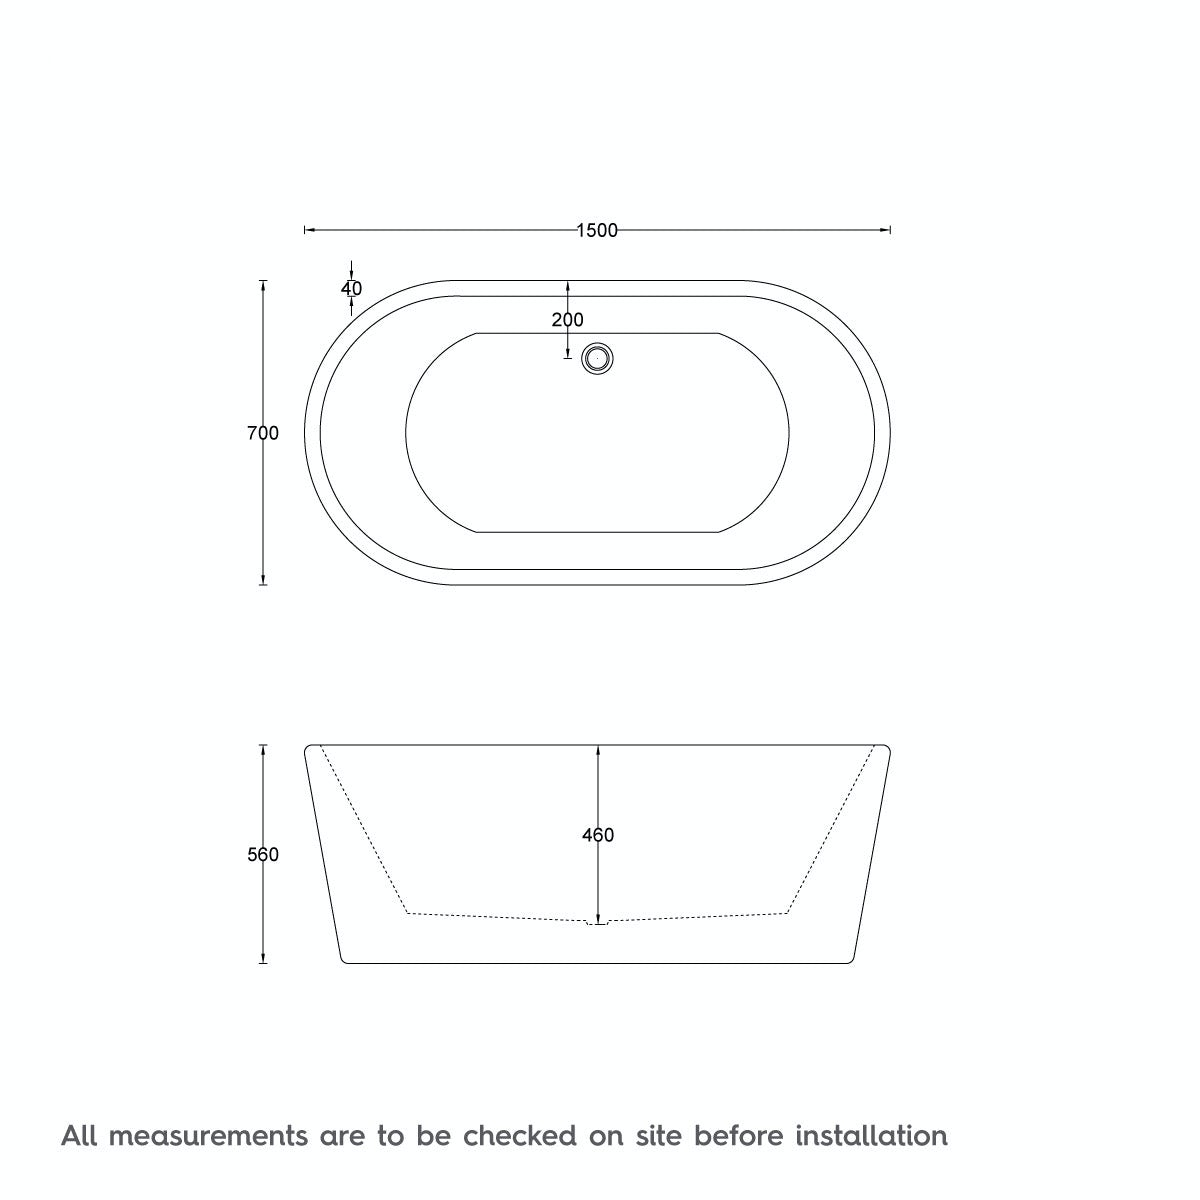 Dimensions for 1500 x 700